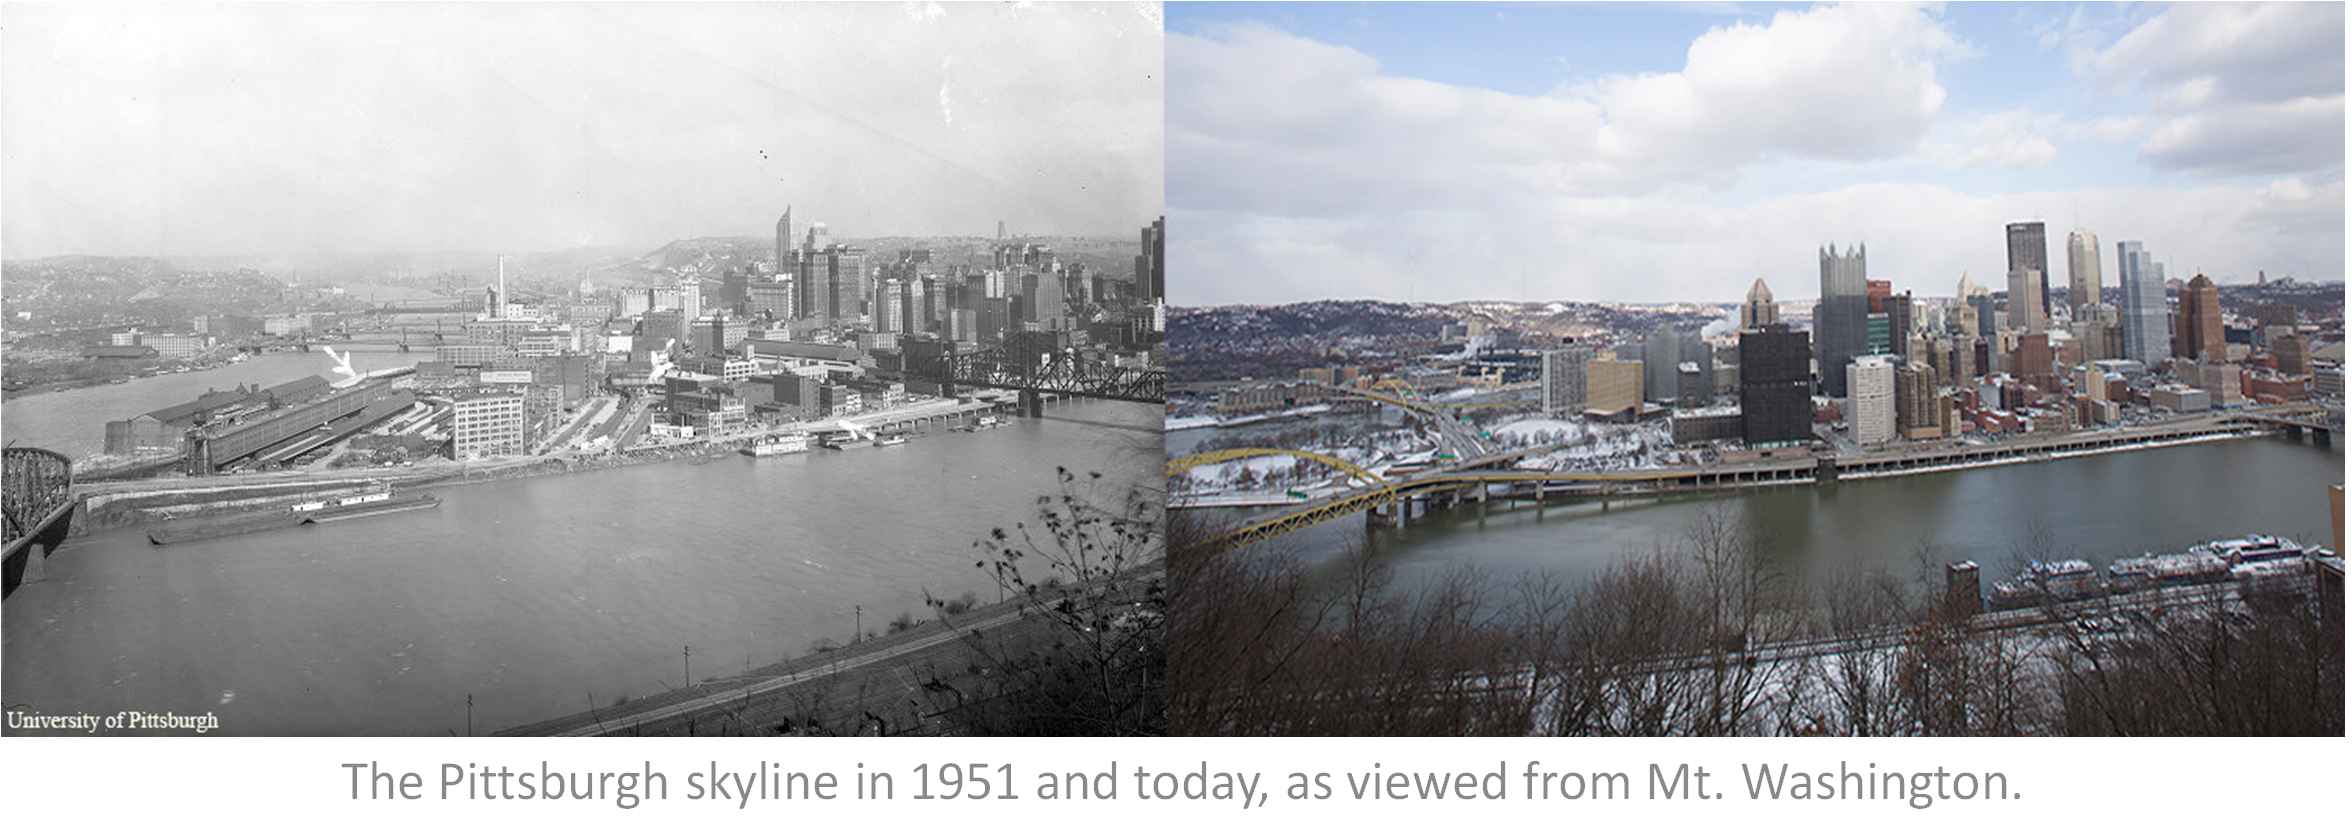 Oldest Of Pittsburgh Skyline Wiring Diagrams Diagramquot Circuit Diagram Types Are Signal Flow Block The In 1951 And Today As Viewed From Mt Rh Pinterest Com Night